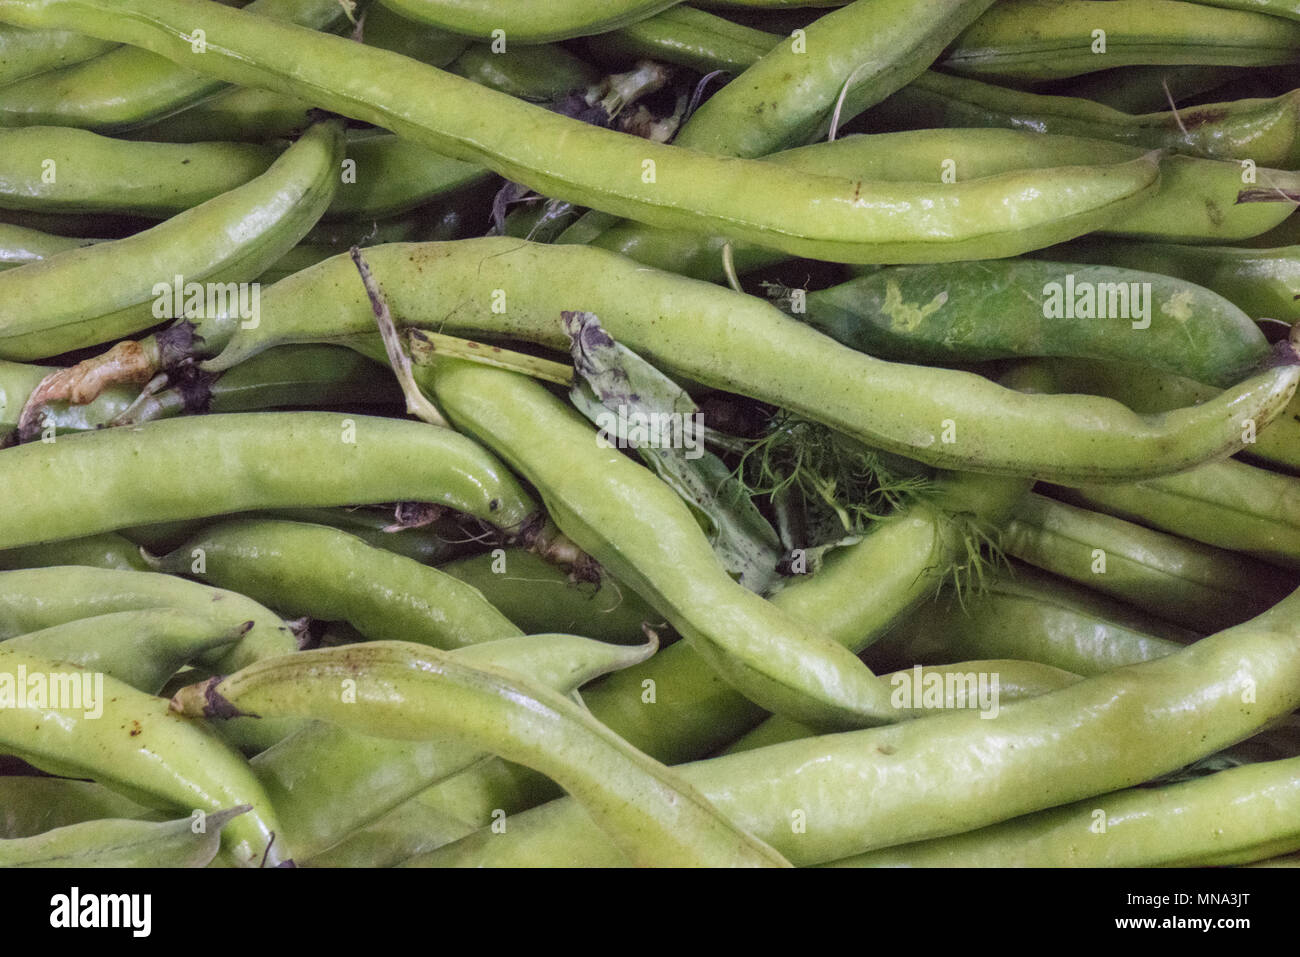 Broad beans for sale on market stall at borough market in central london. Legumes in pods freshly picked and healthy foods part of 5 a day five a day. - Stock Image